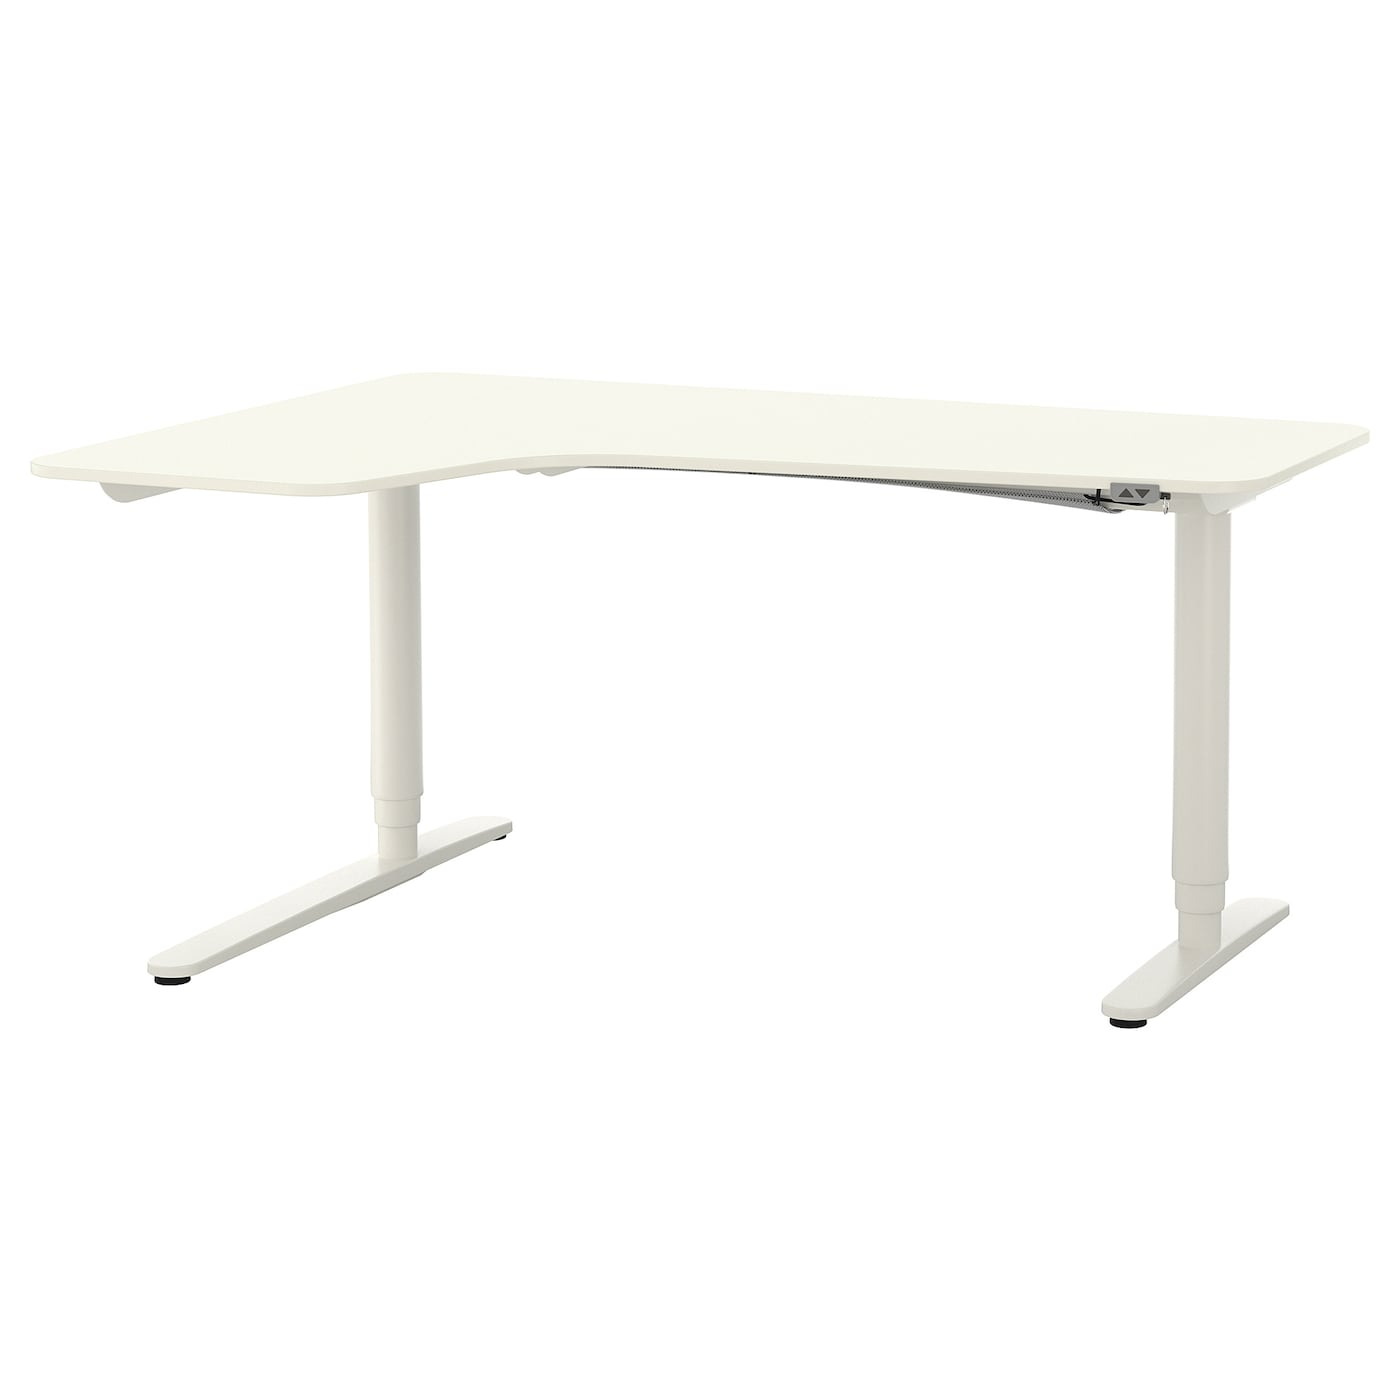 BEKANT Corner Desk Left Sit/stand White 160 X 110 Cm